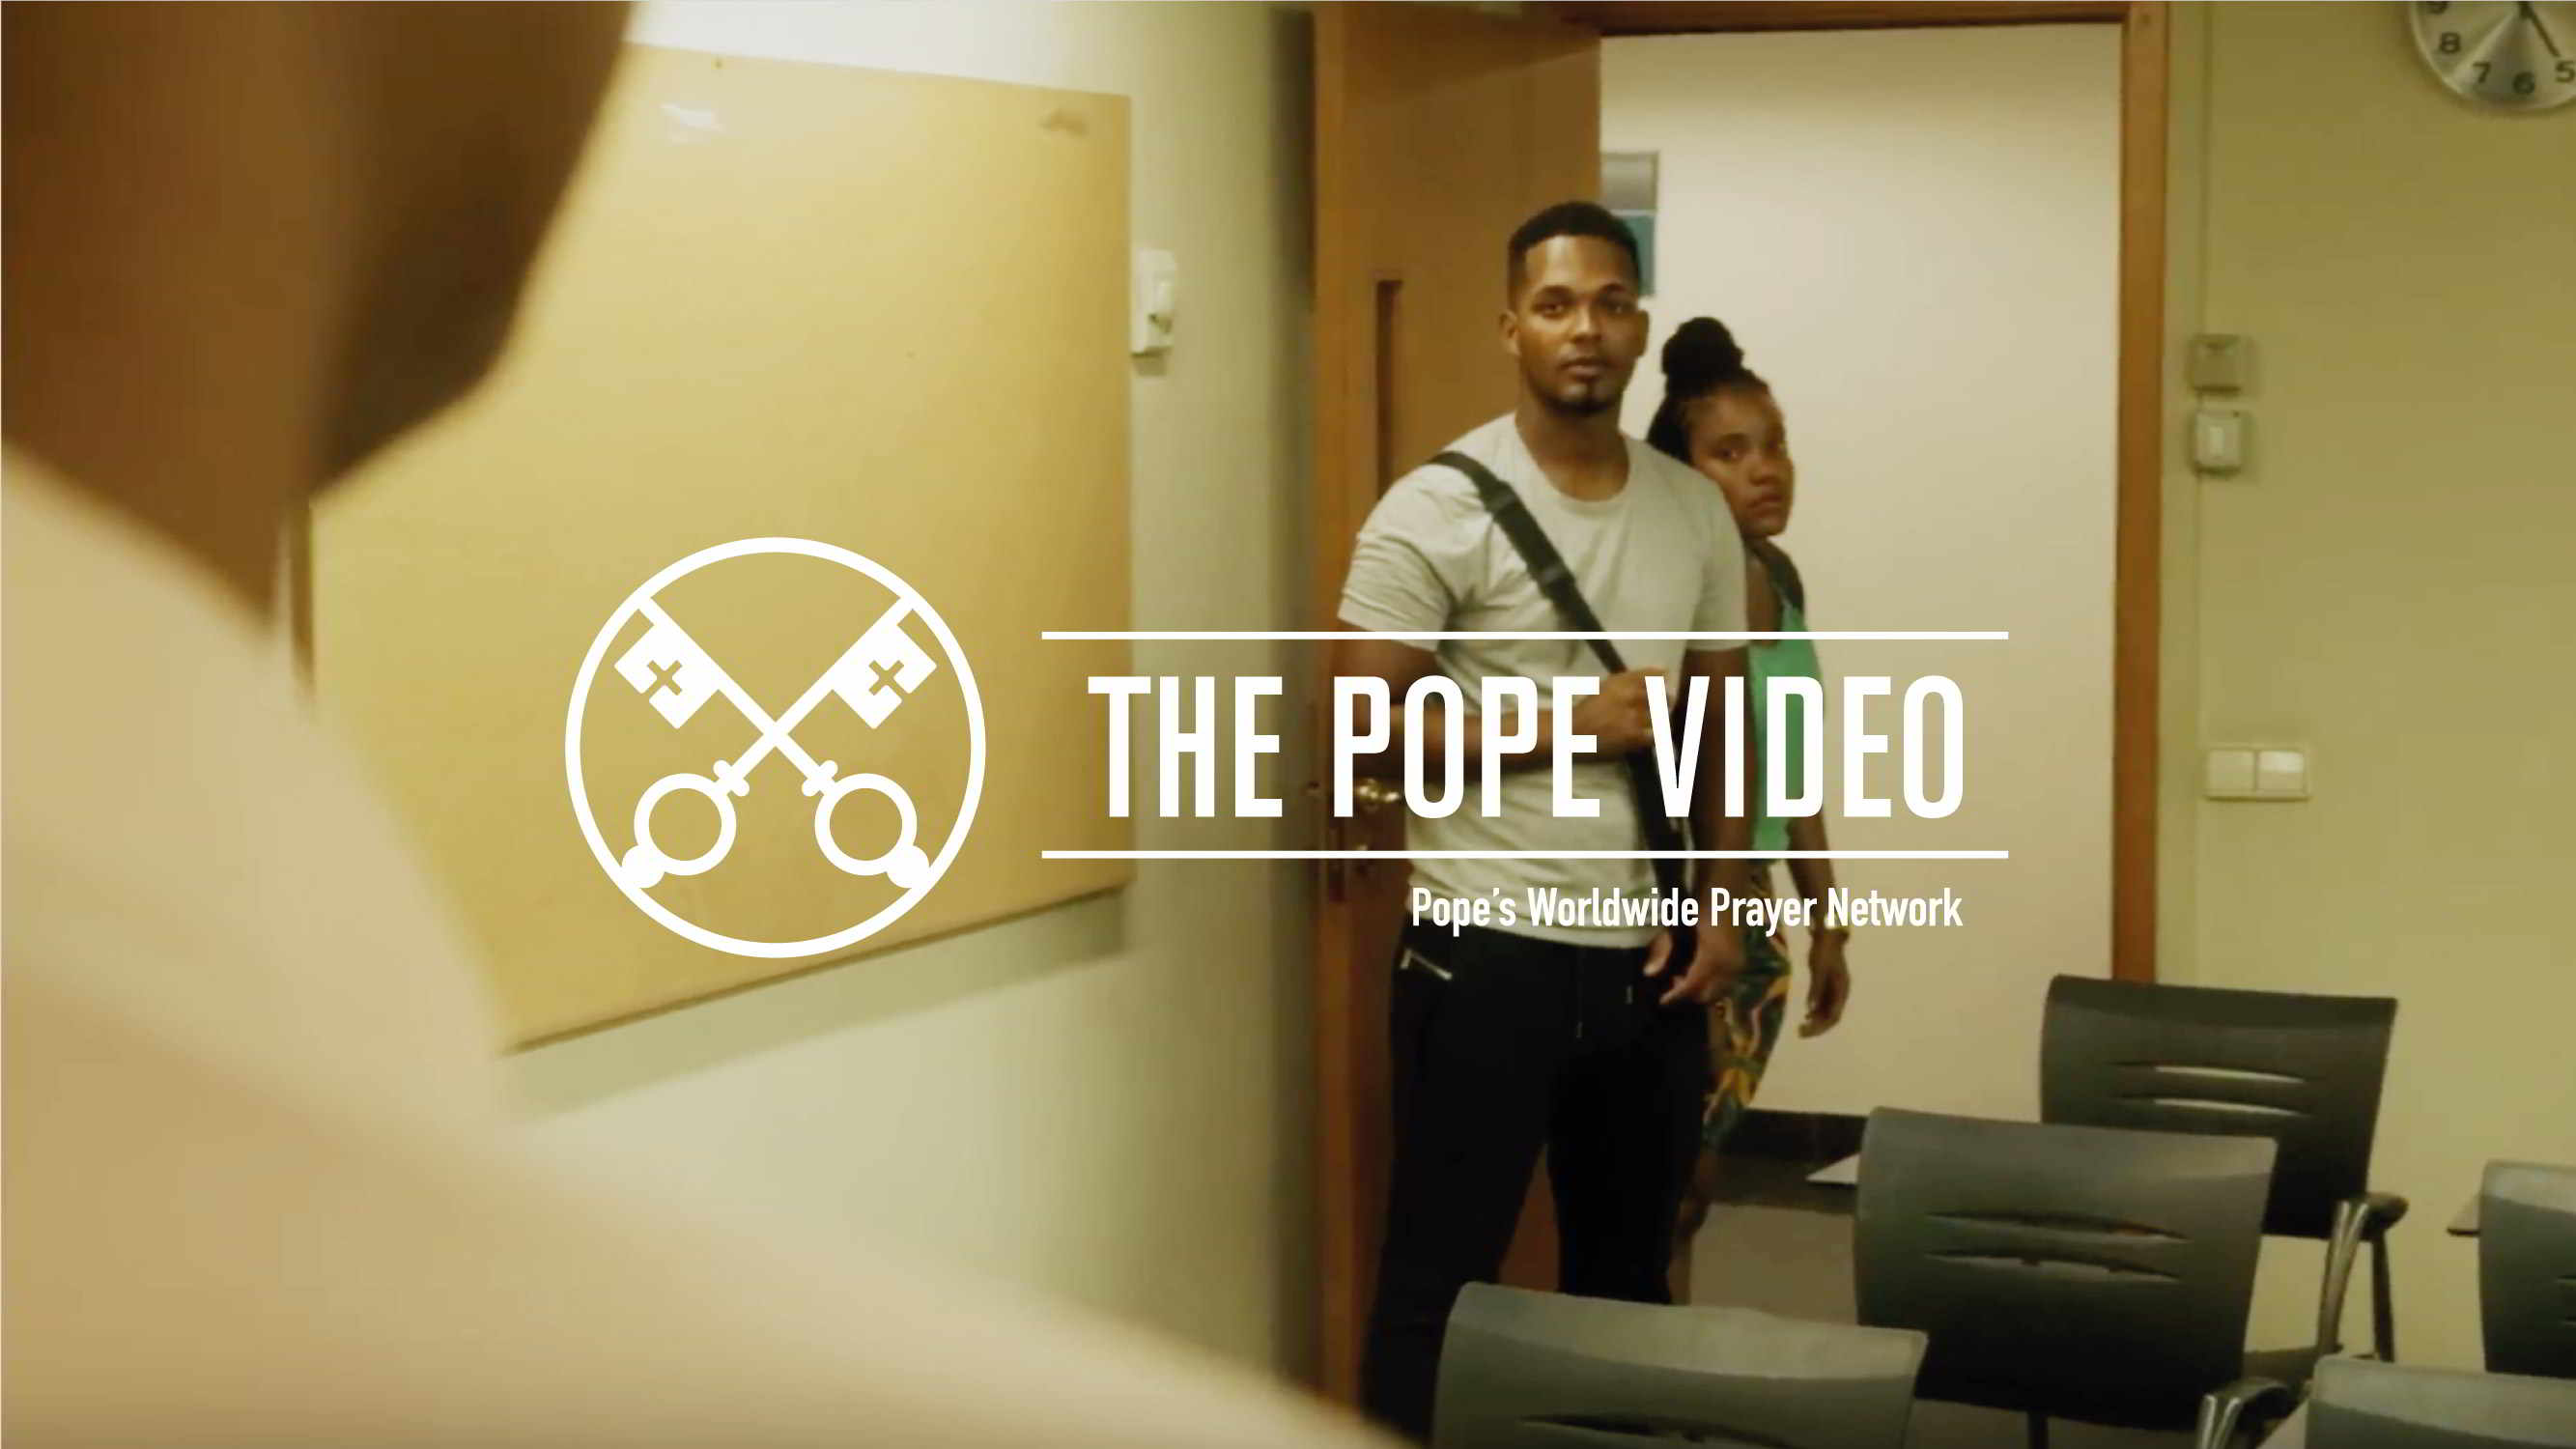 Official Image - The Pope Video 9 2018 - Young People in Africa - 1 English